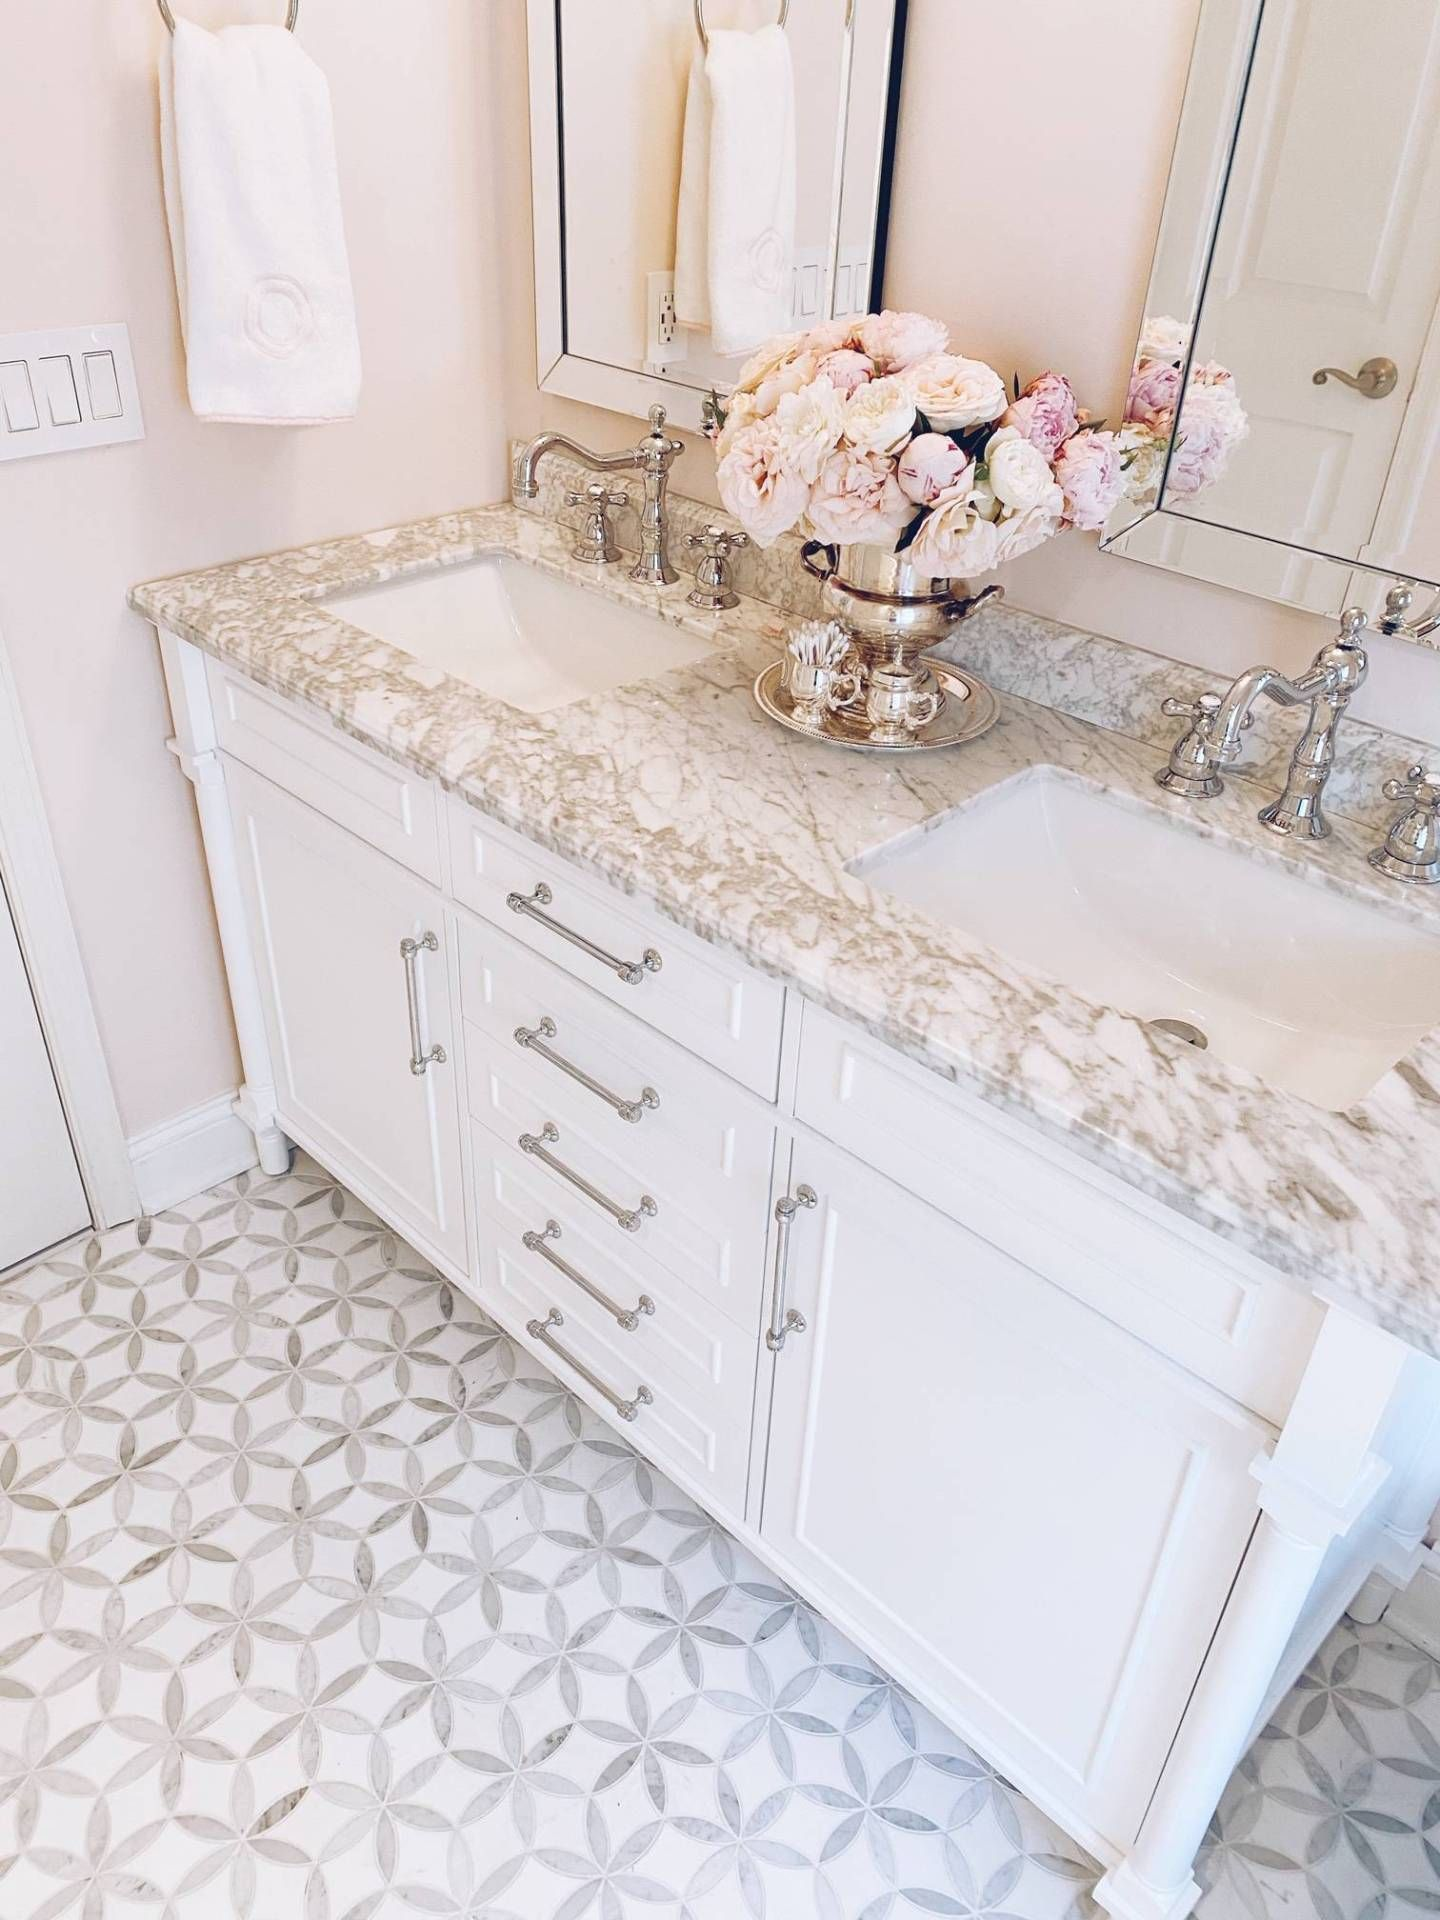 A Pink Girls Bathroom Remodel - The Pink Dream